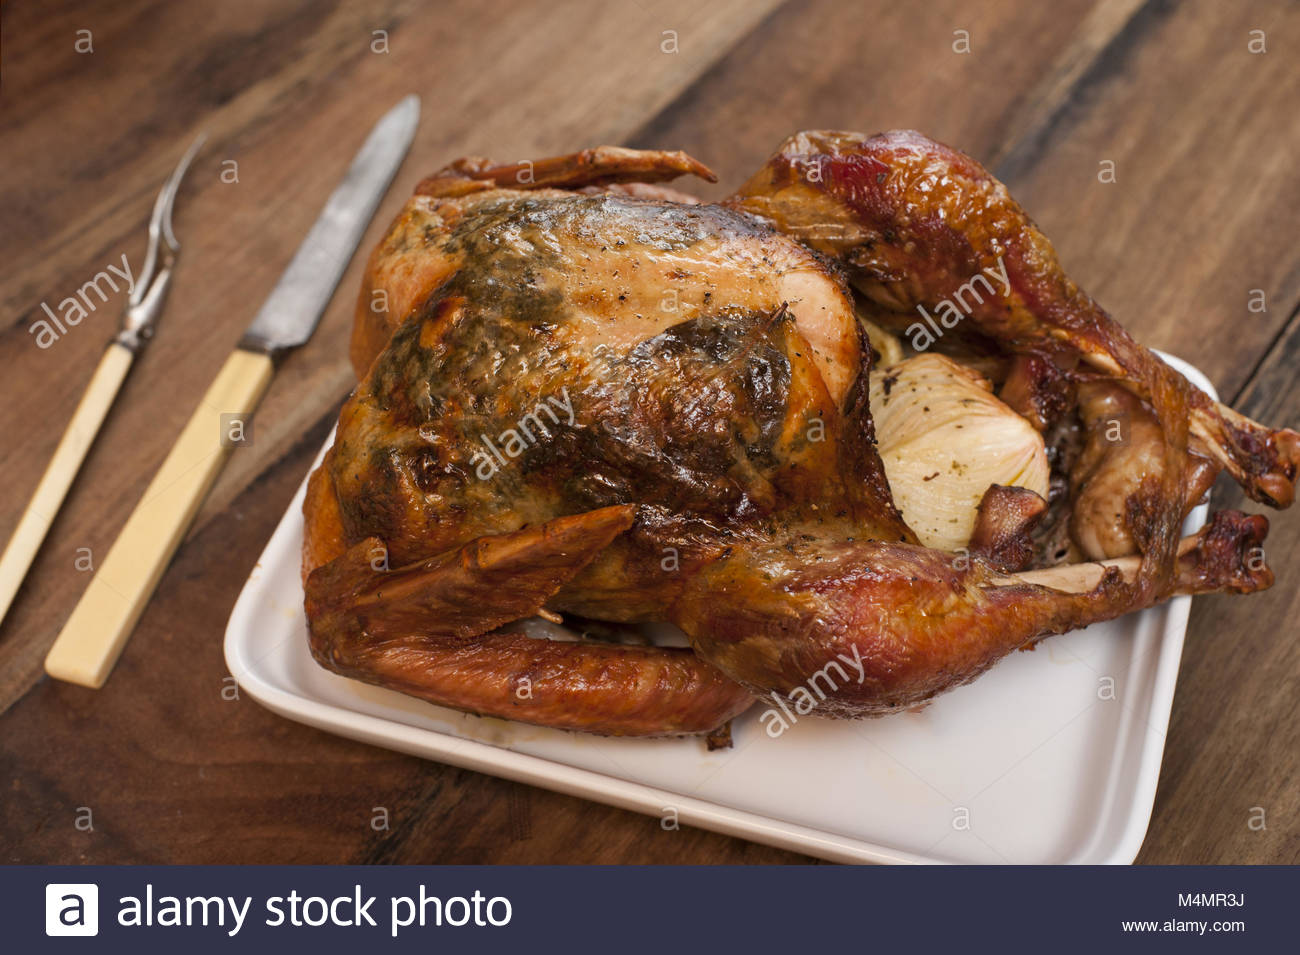 Fried whole chicken - Stock Image